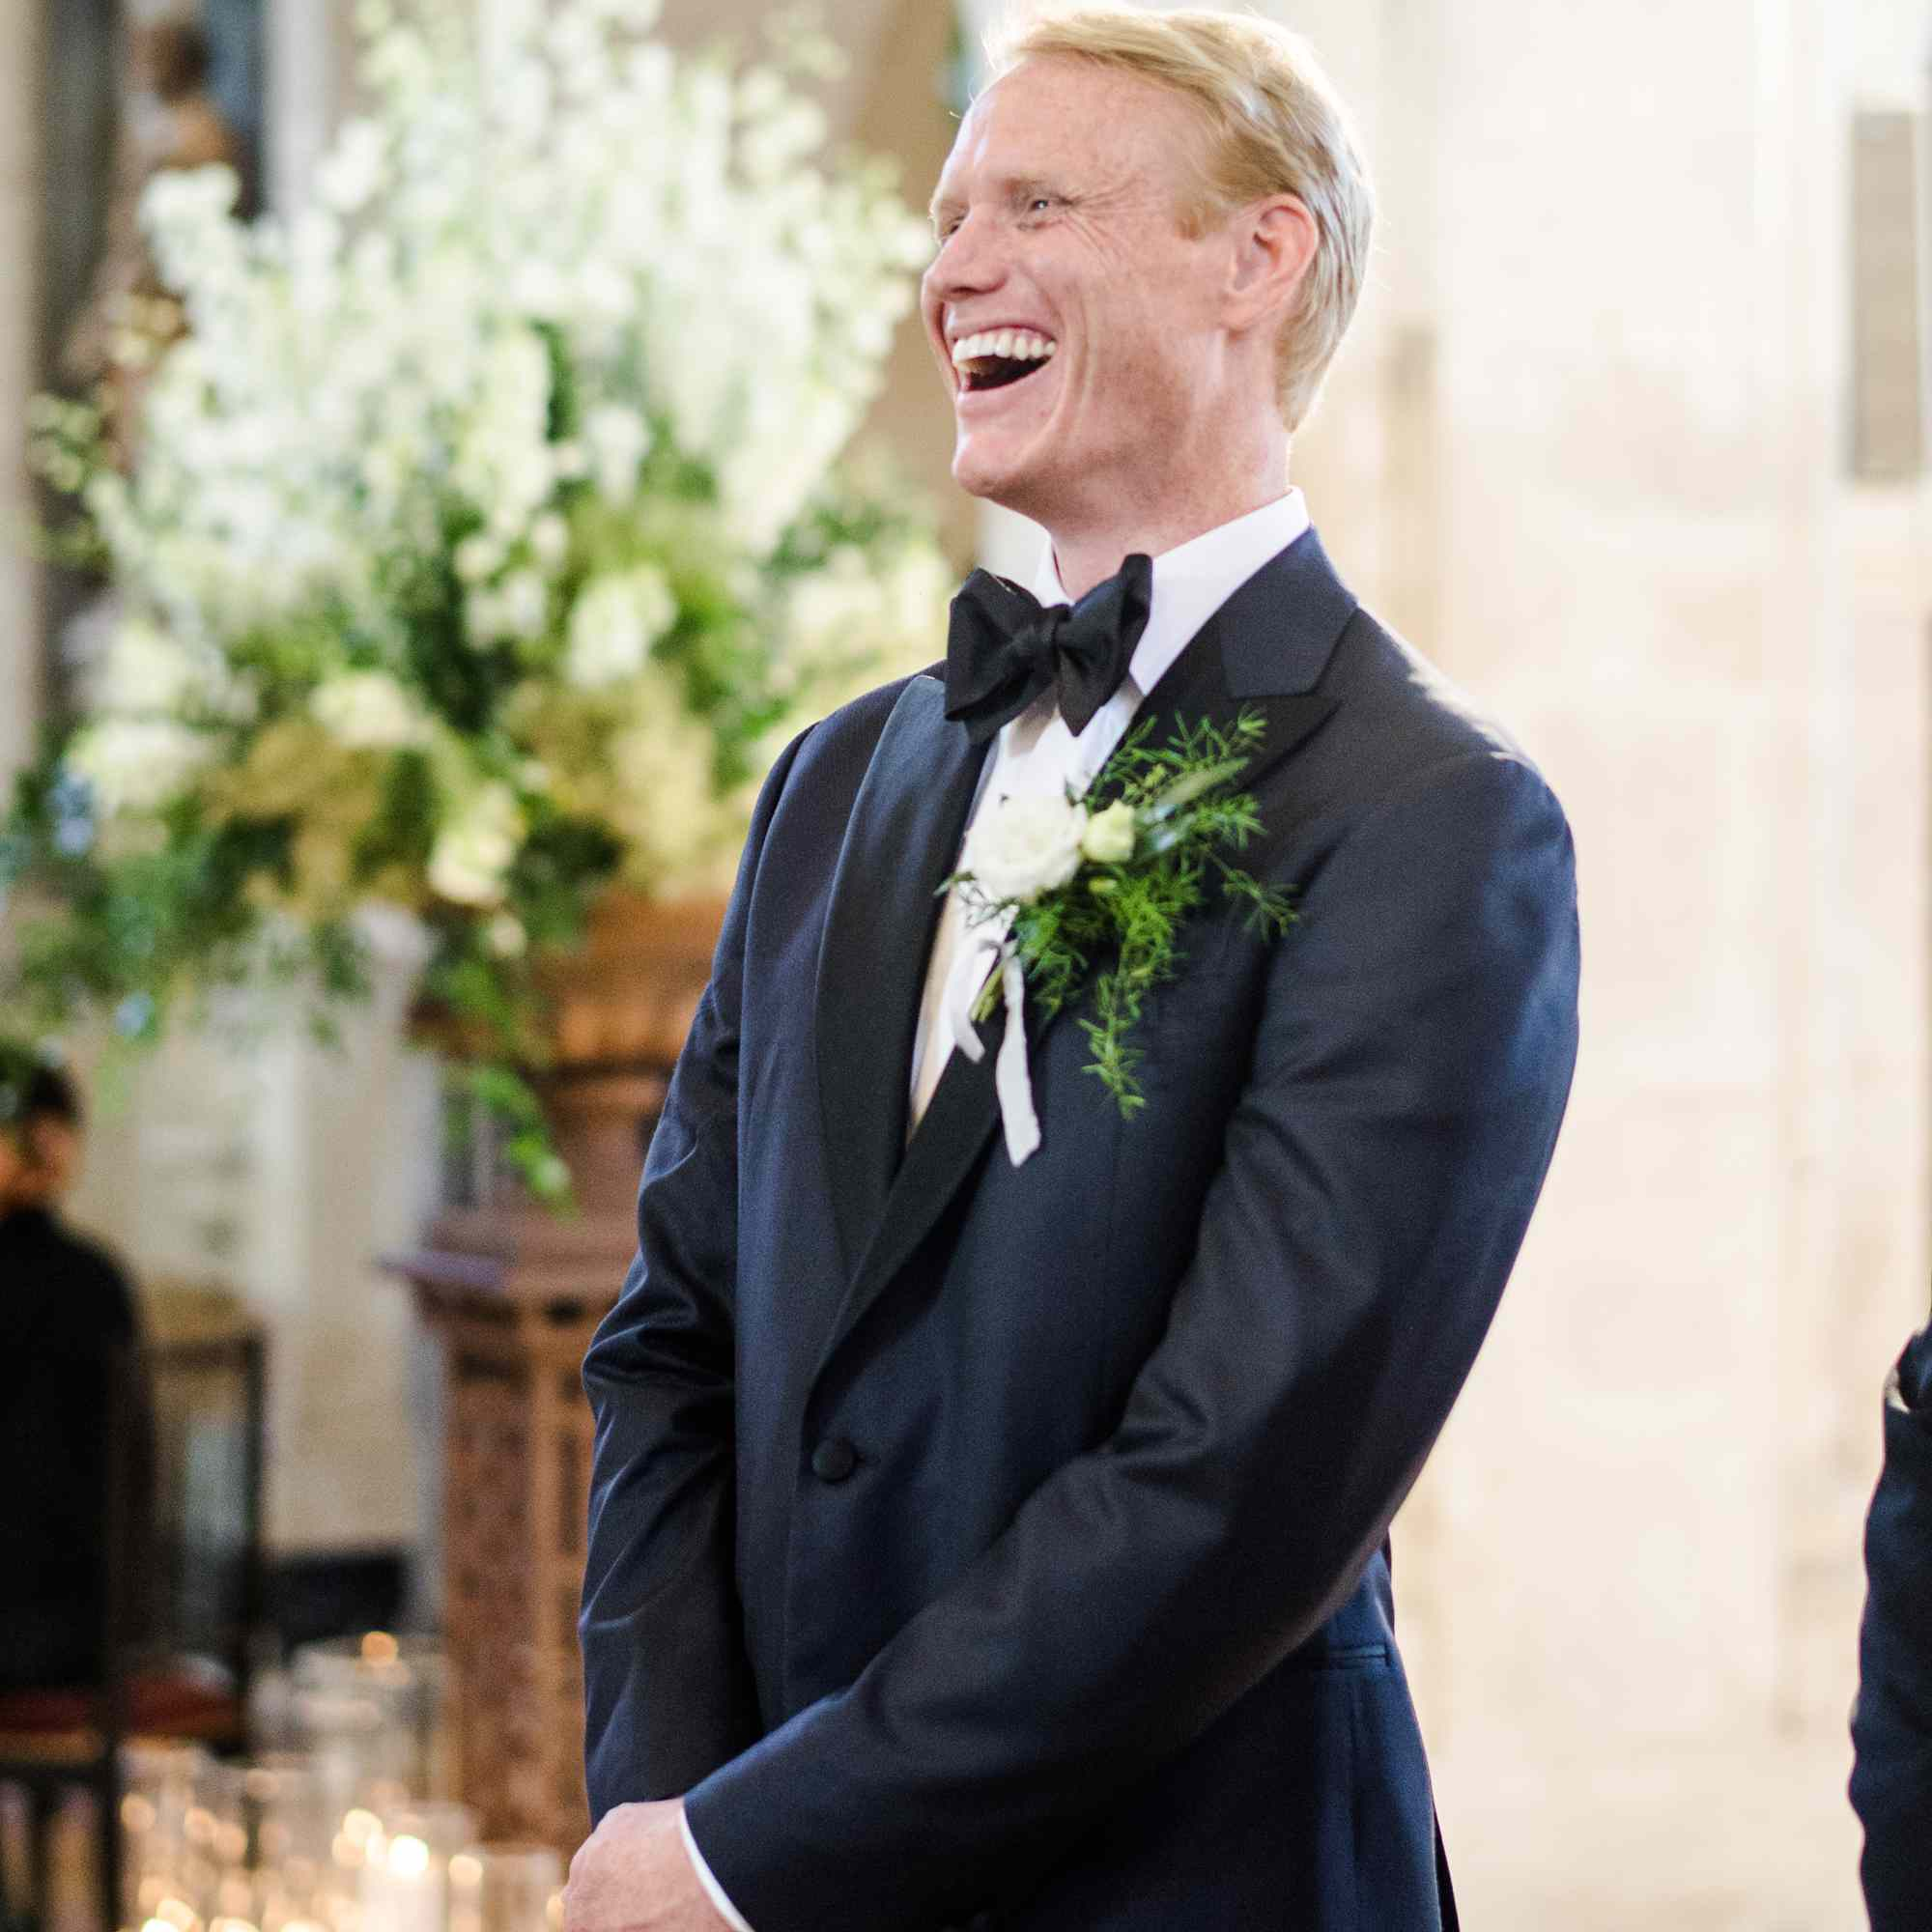 <p>Groom at altar</p><br><br>